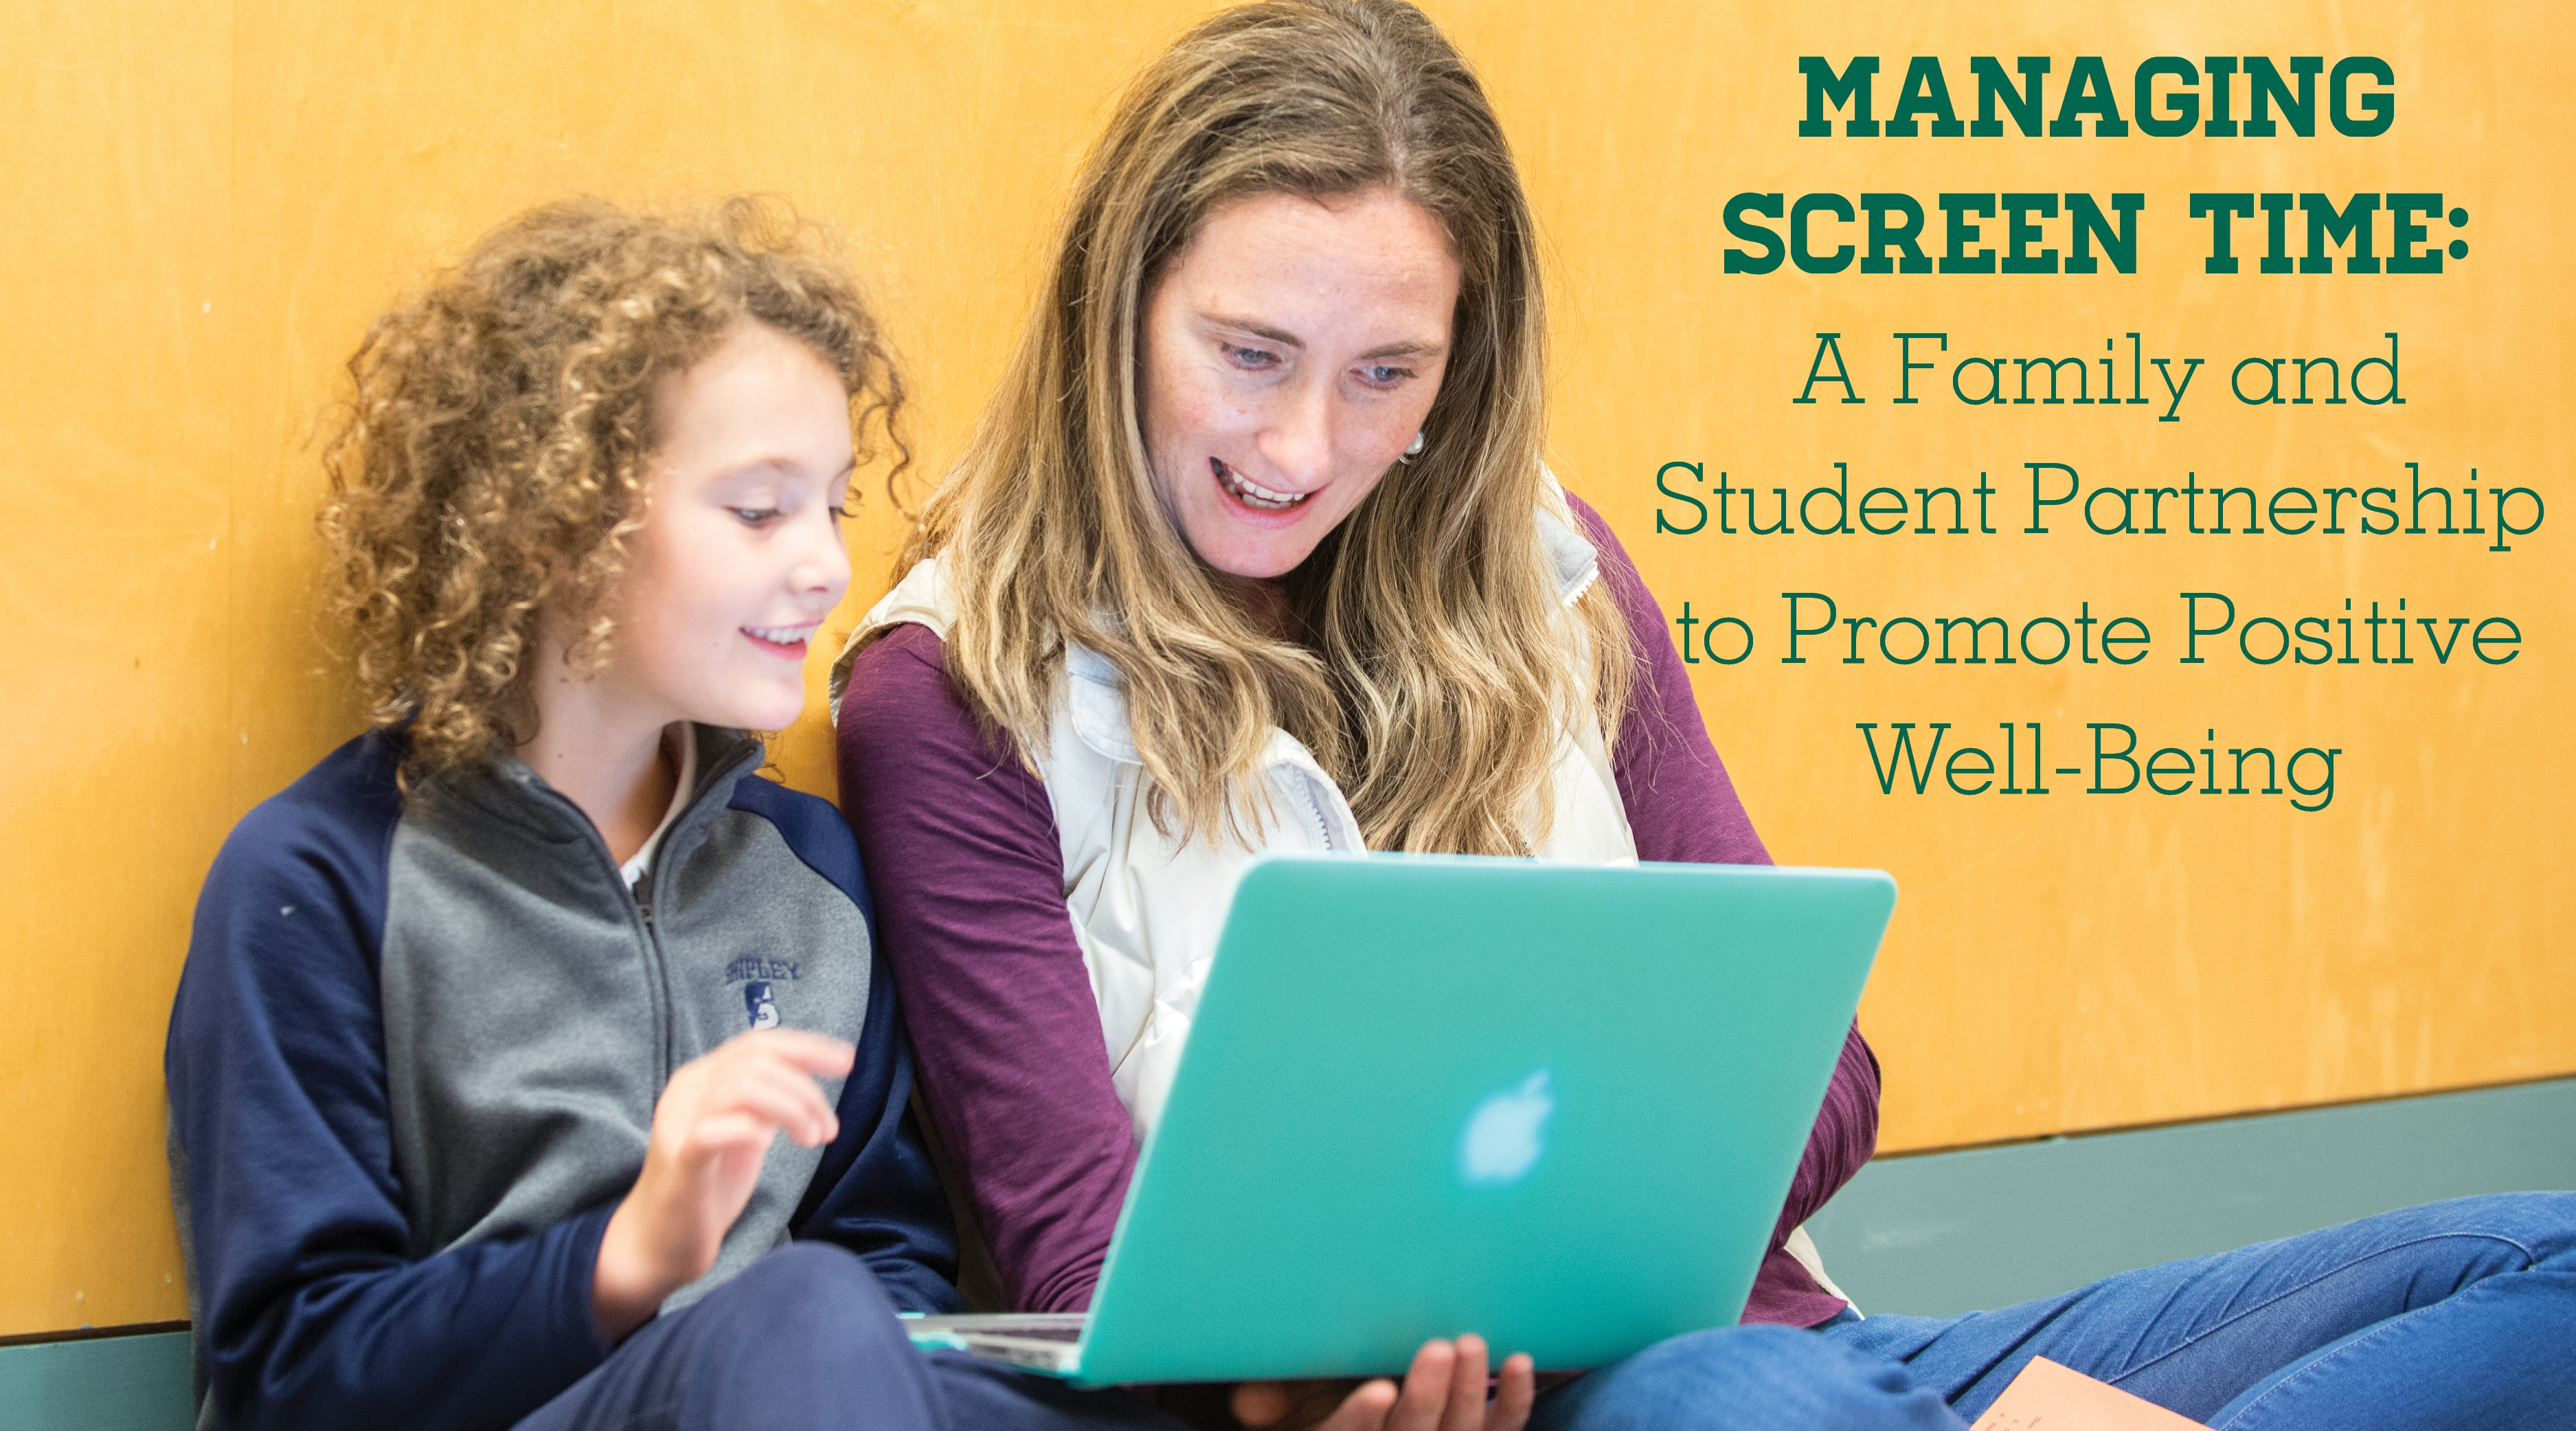 Managing Screen Time: A Family and Student Partnership to Promote Positive Well-Being